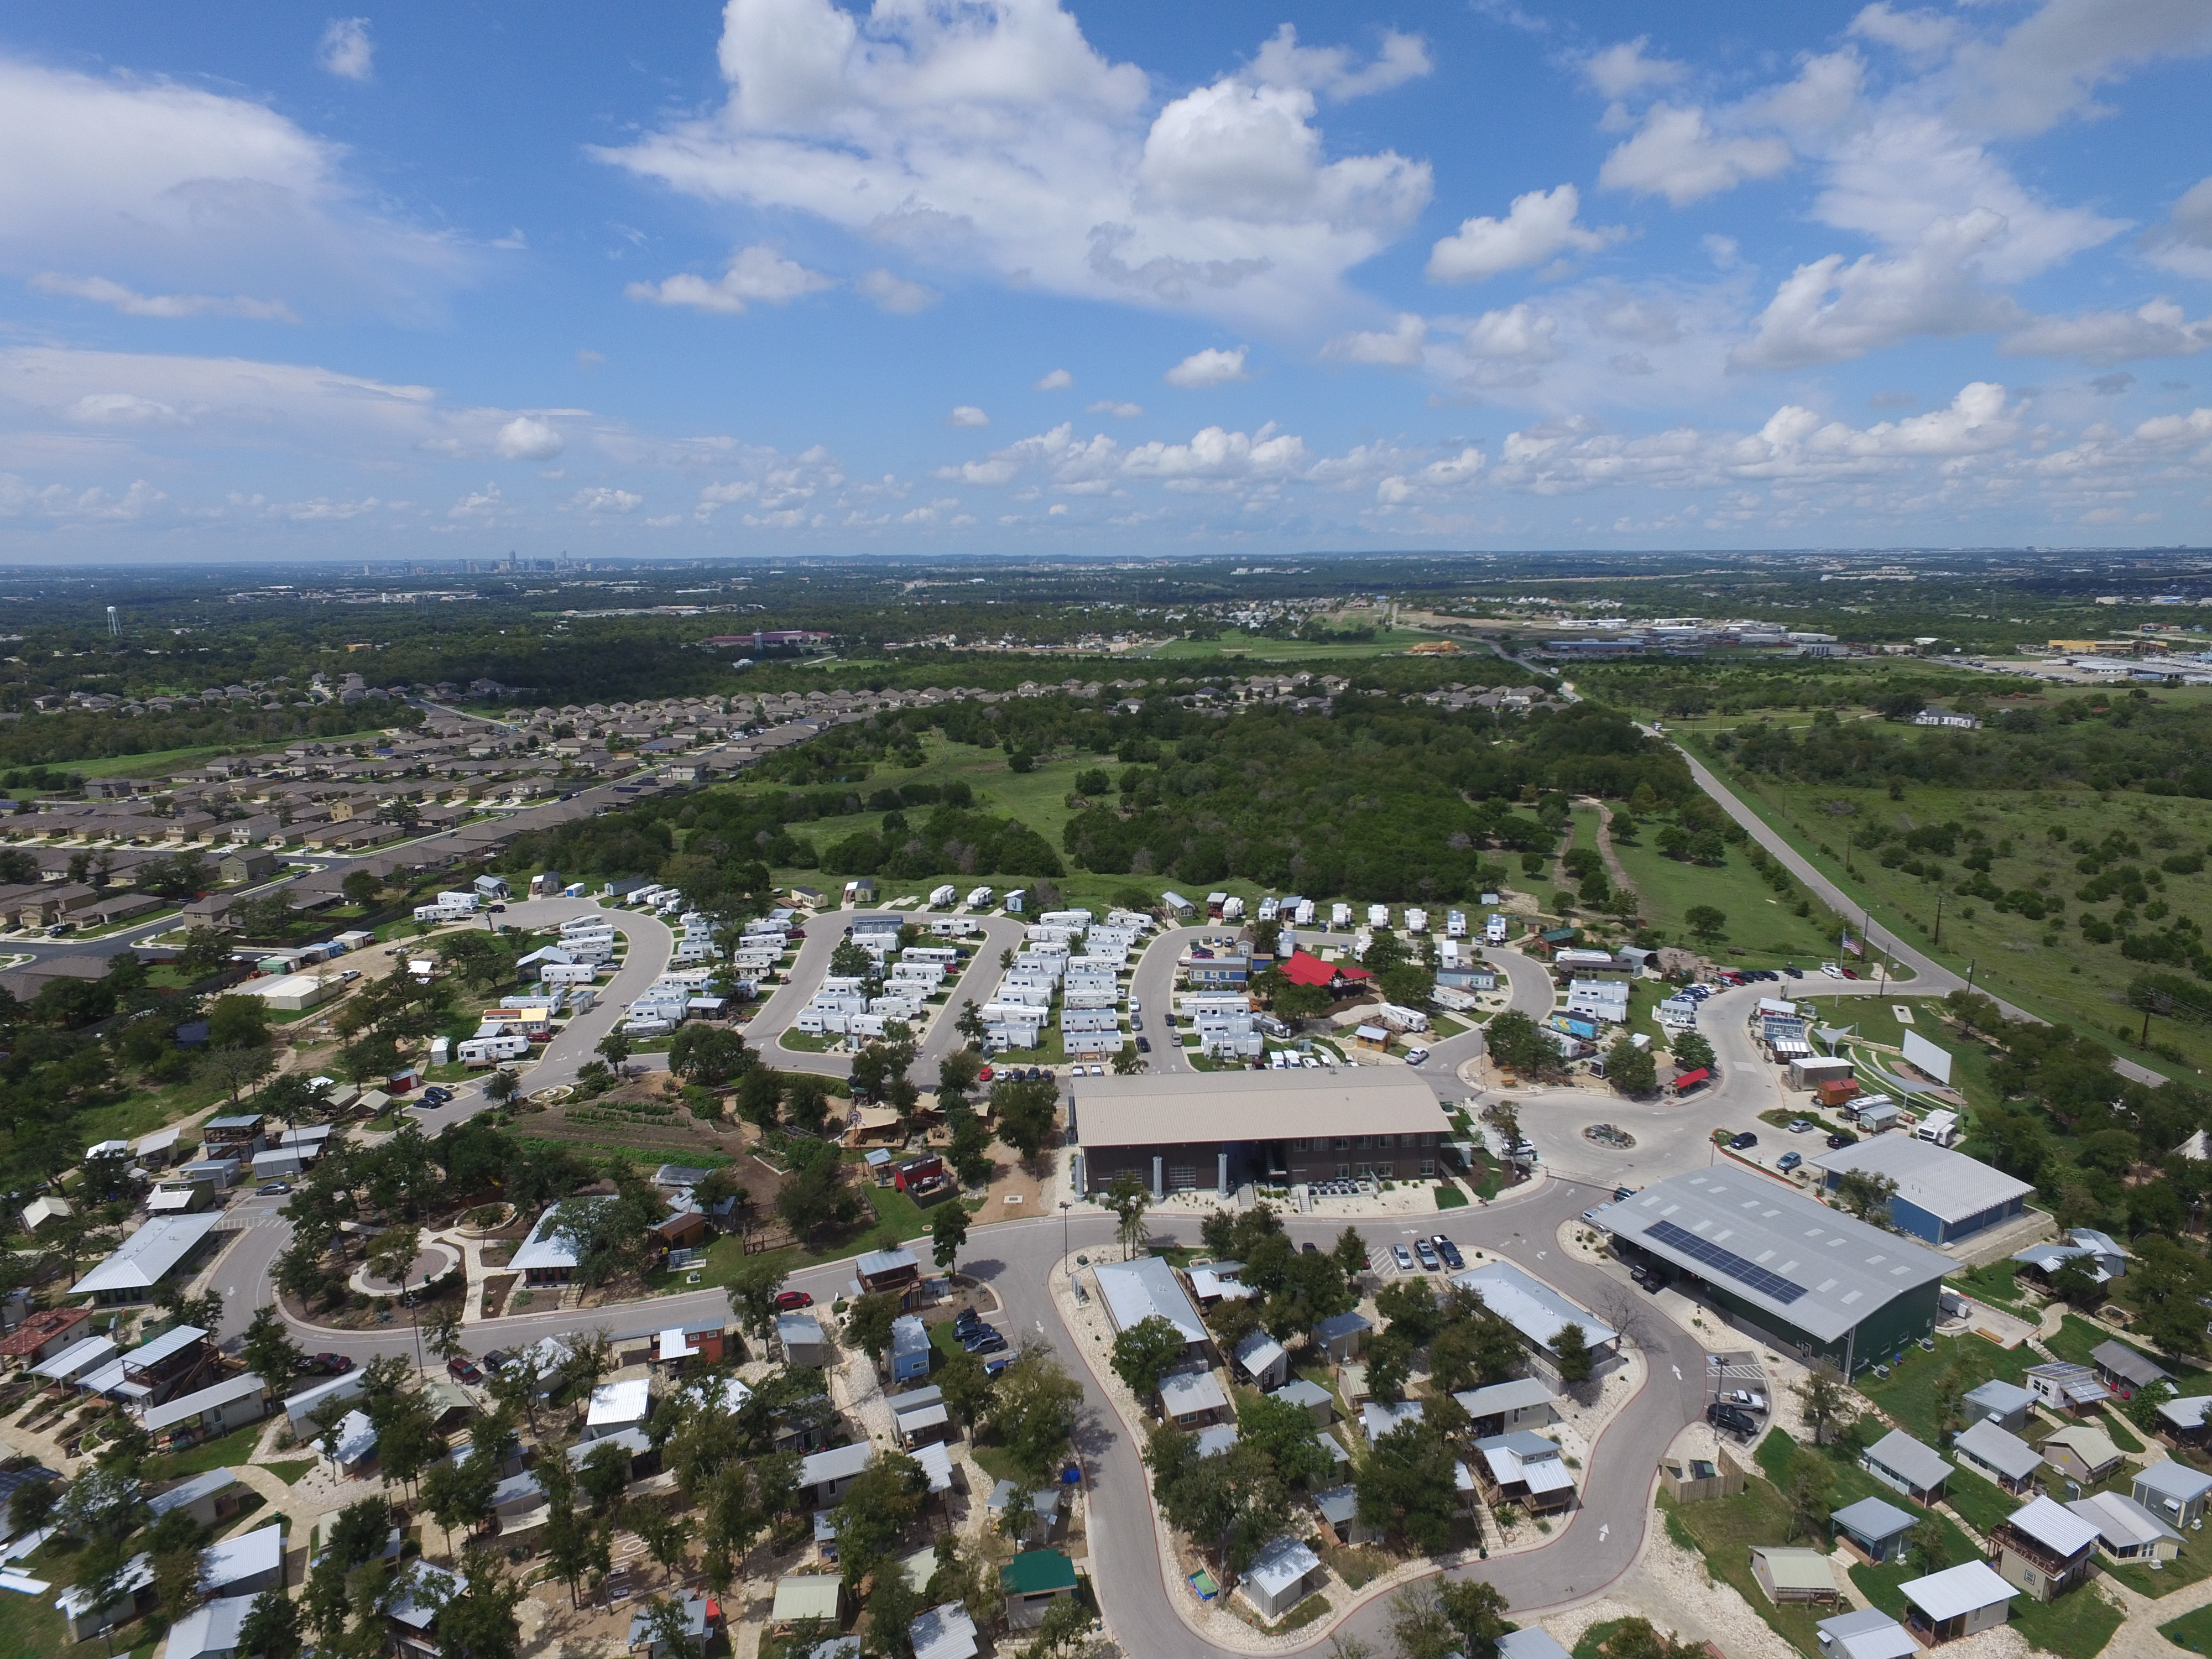 Aerial view of small development with tiny homes, RVs, community buildings, and adjacent land